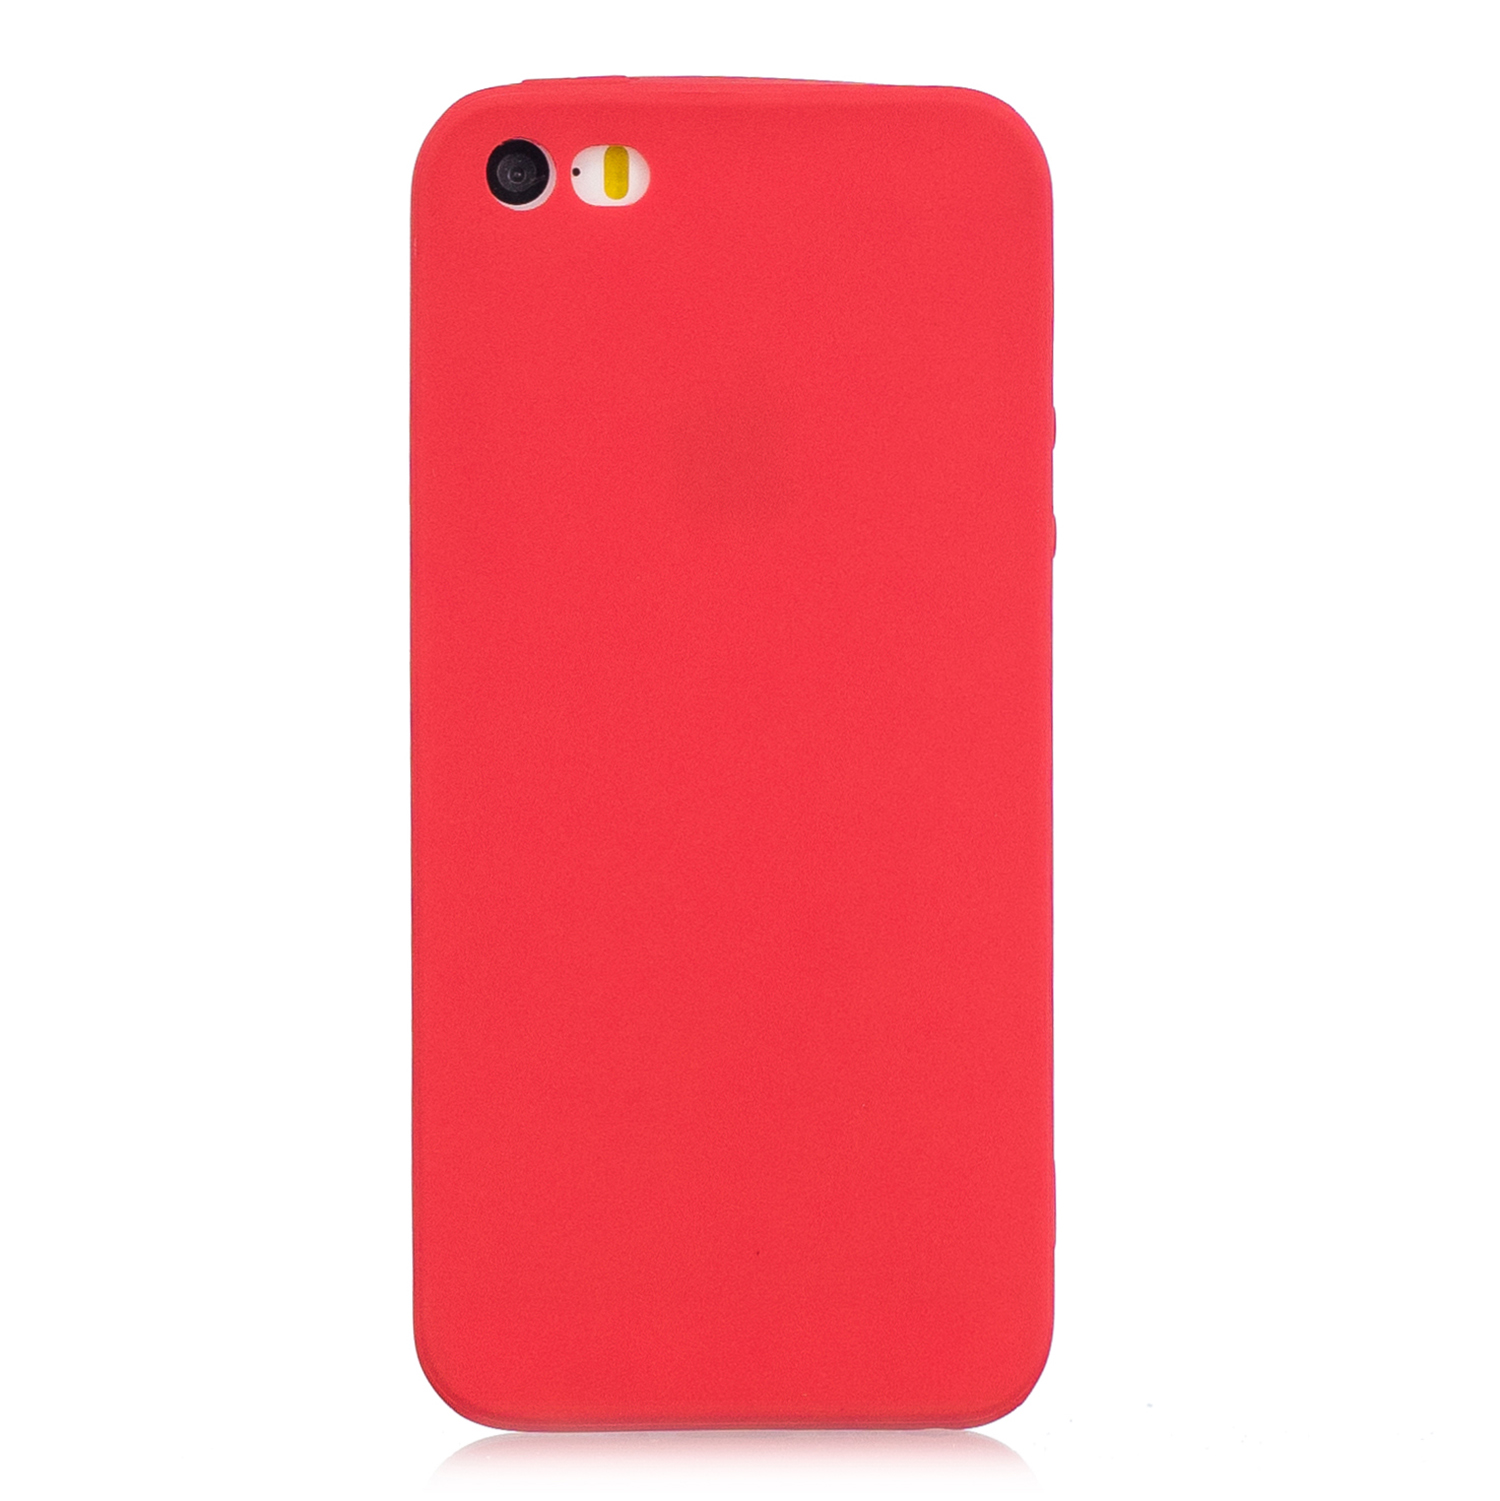 for iPhone 5/5S/SE Lovely Candy Color Matte TPU Anti-scratch Non-slip Protective Cover Back Case red